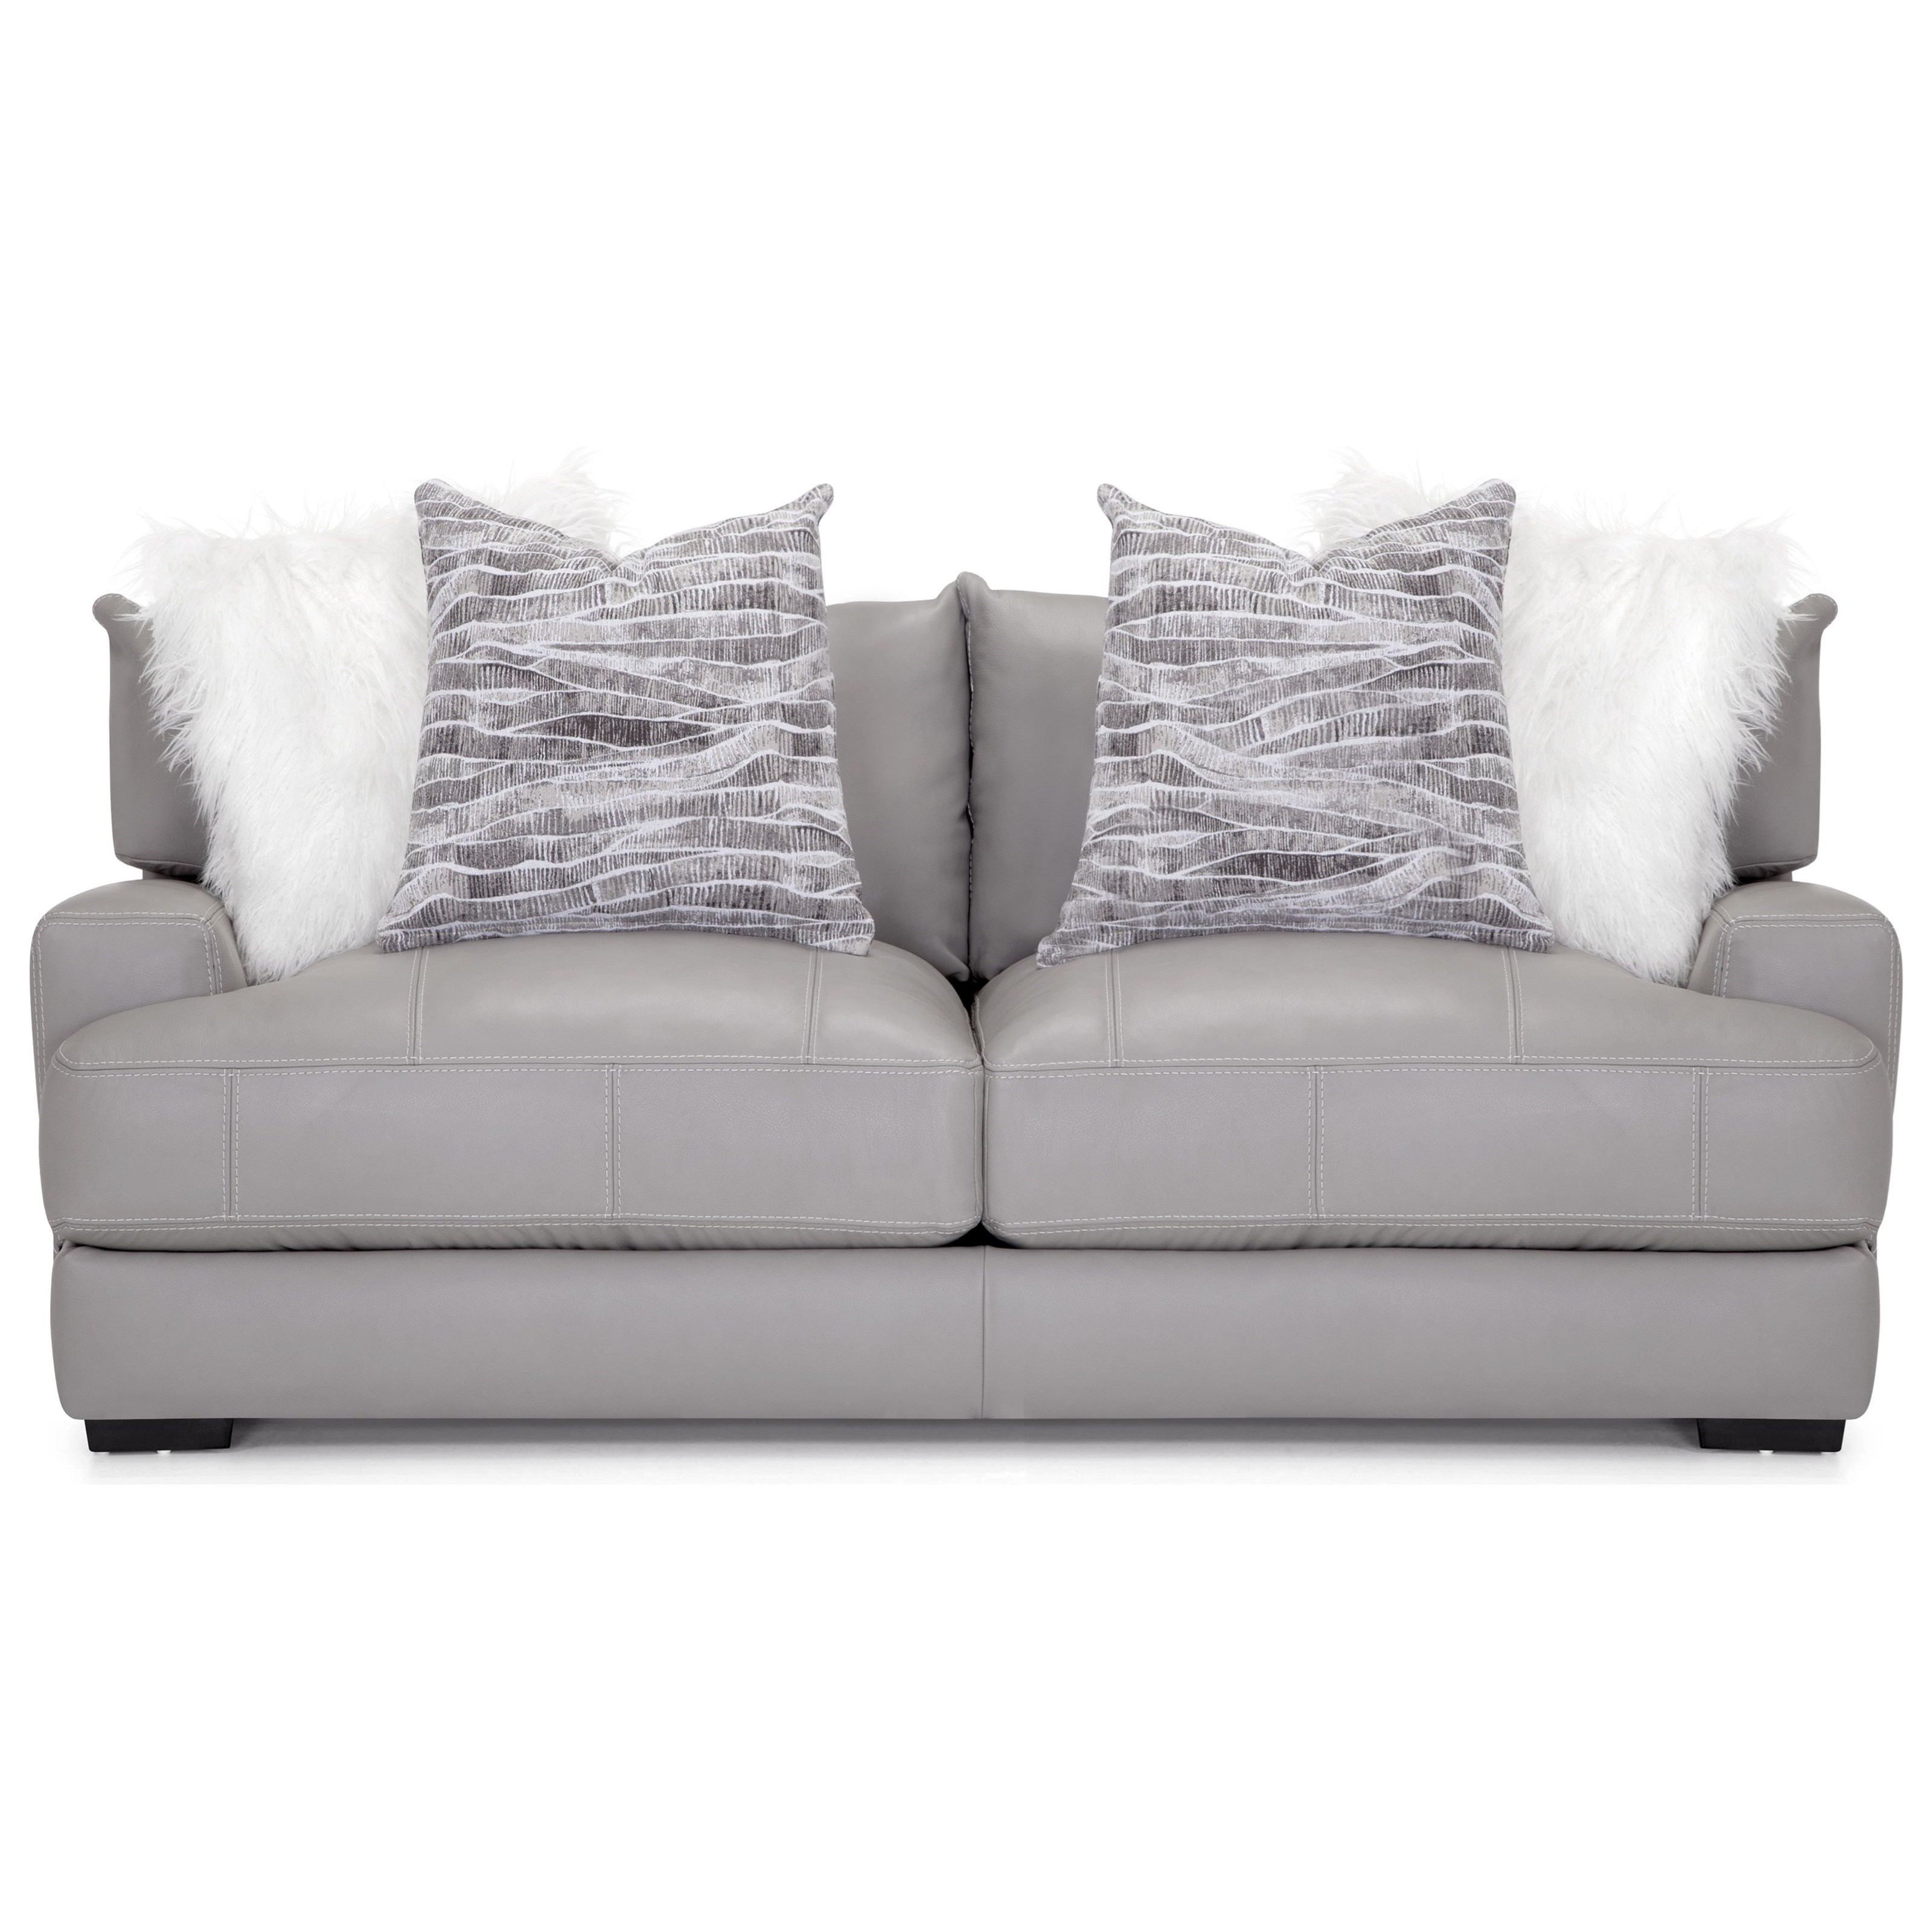 909 Leather Match Sofa by Franklin at Wilcox Furniture